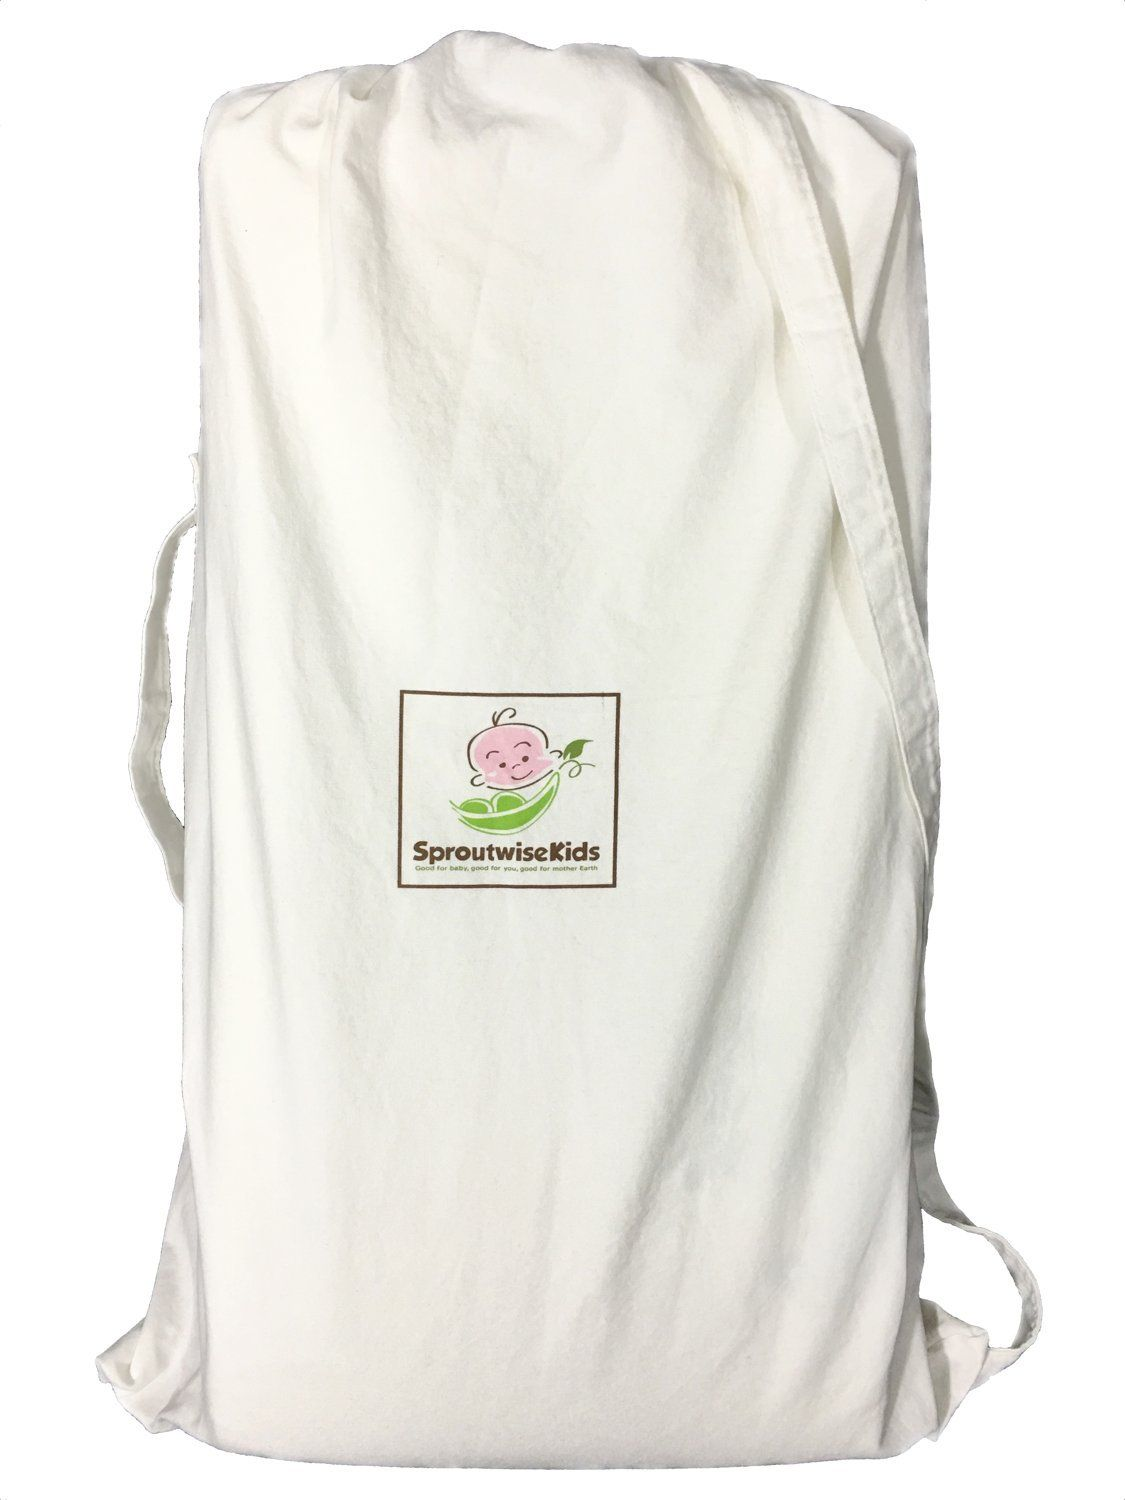 extra carry bag for folding pack n play mattress by sproutwise kids